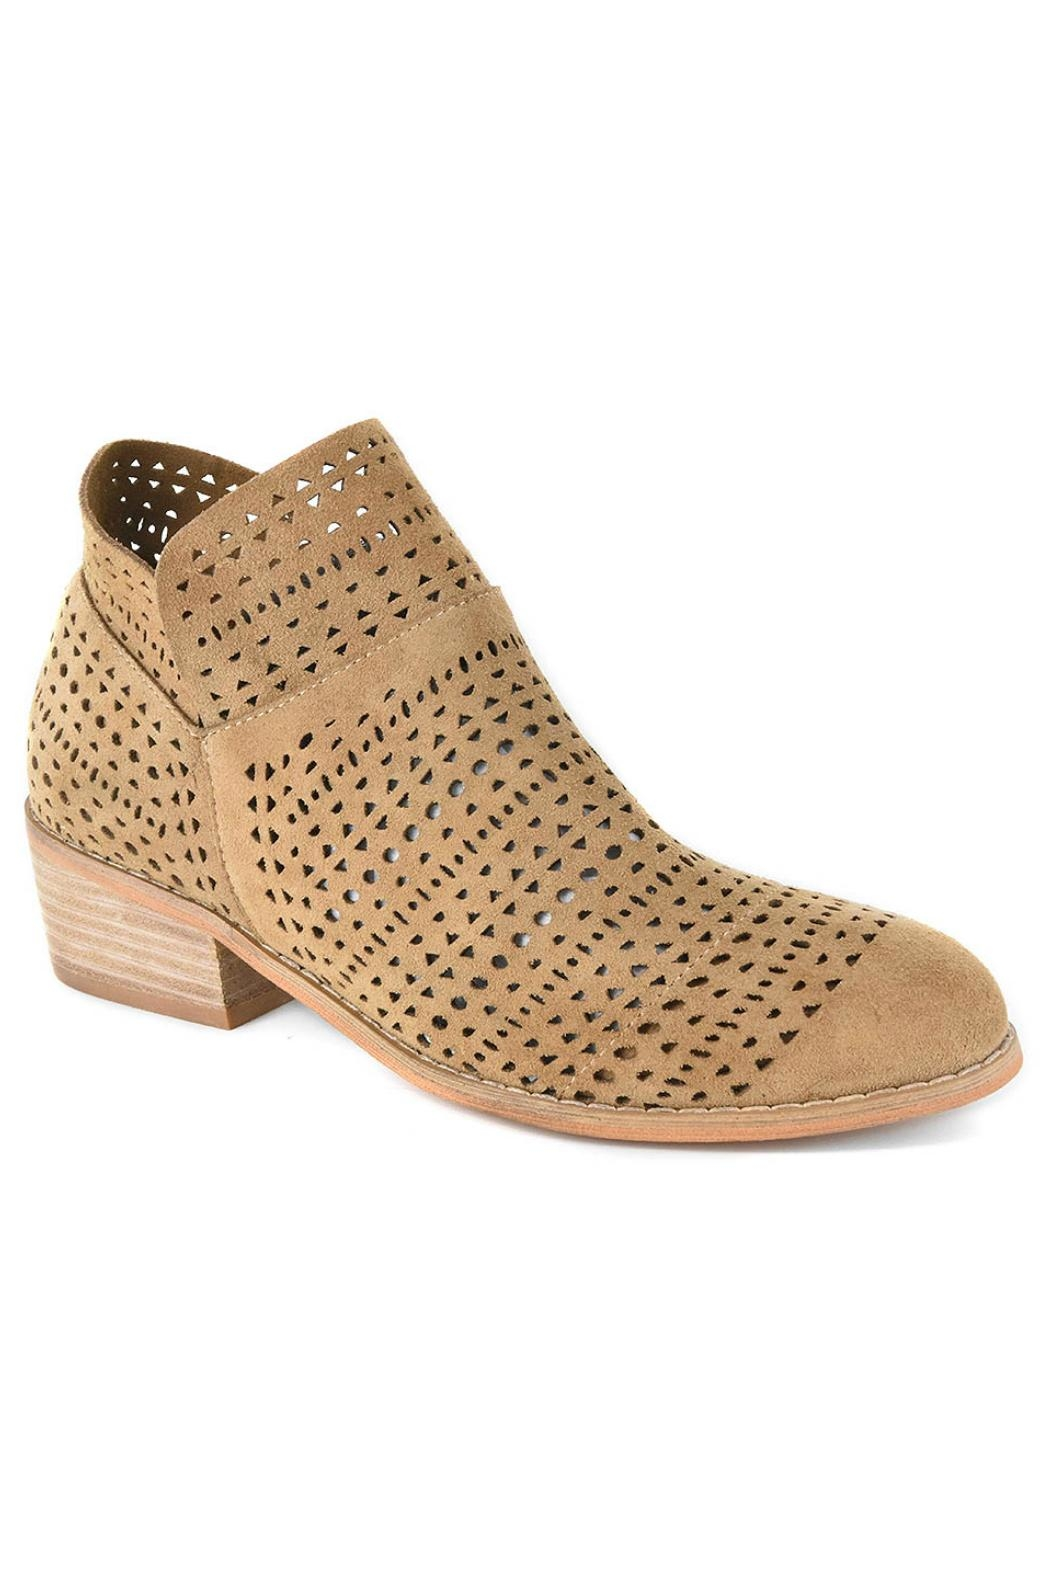 Corky's Shoes Brier Taupe Shoe - Main Image